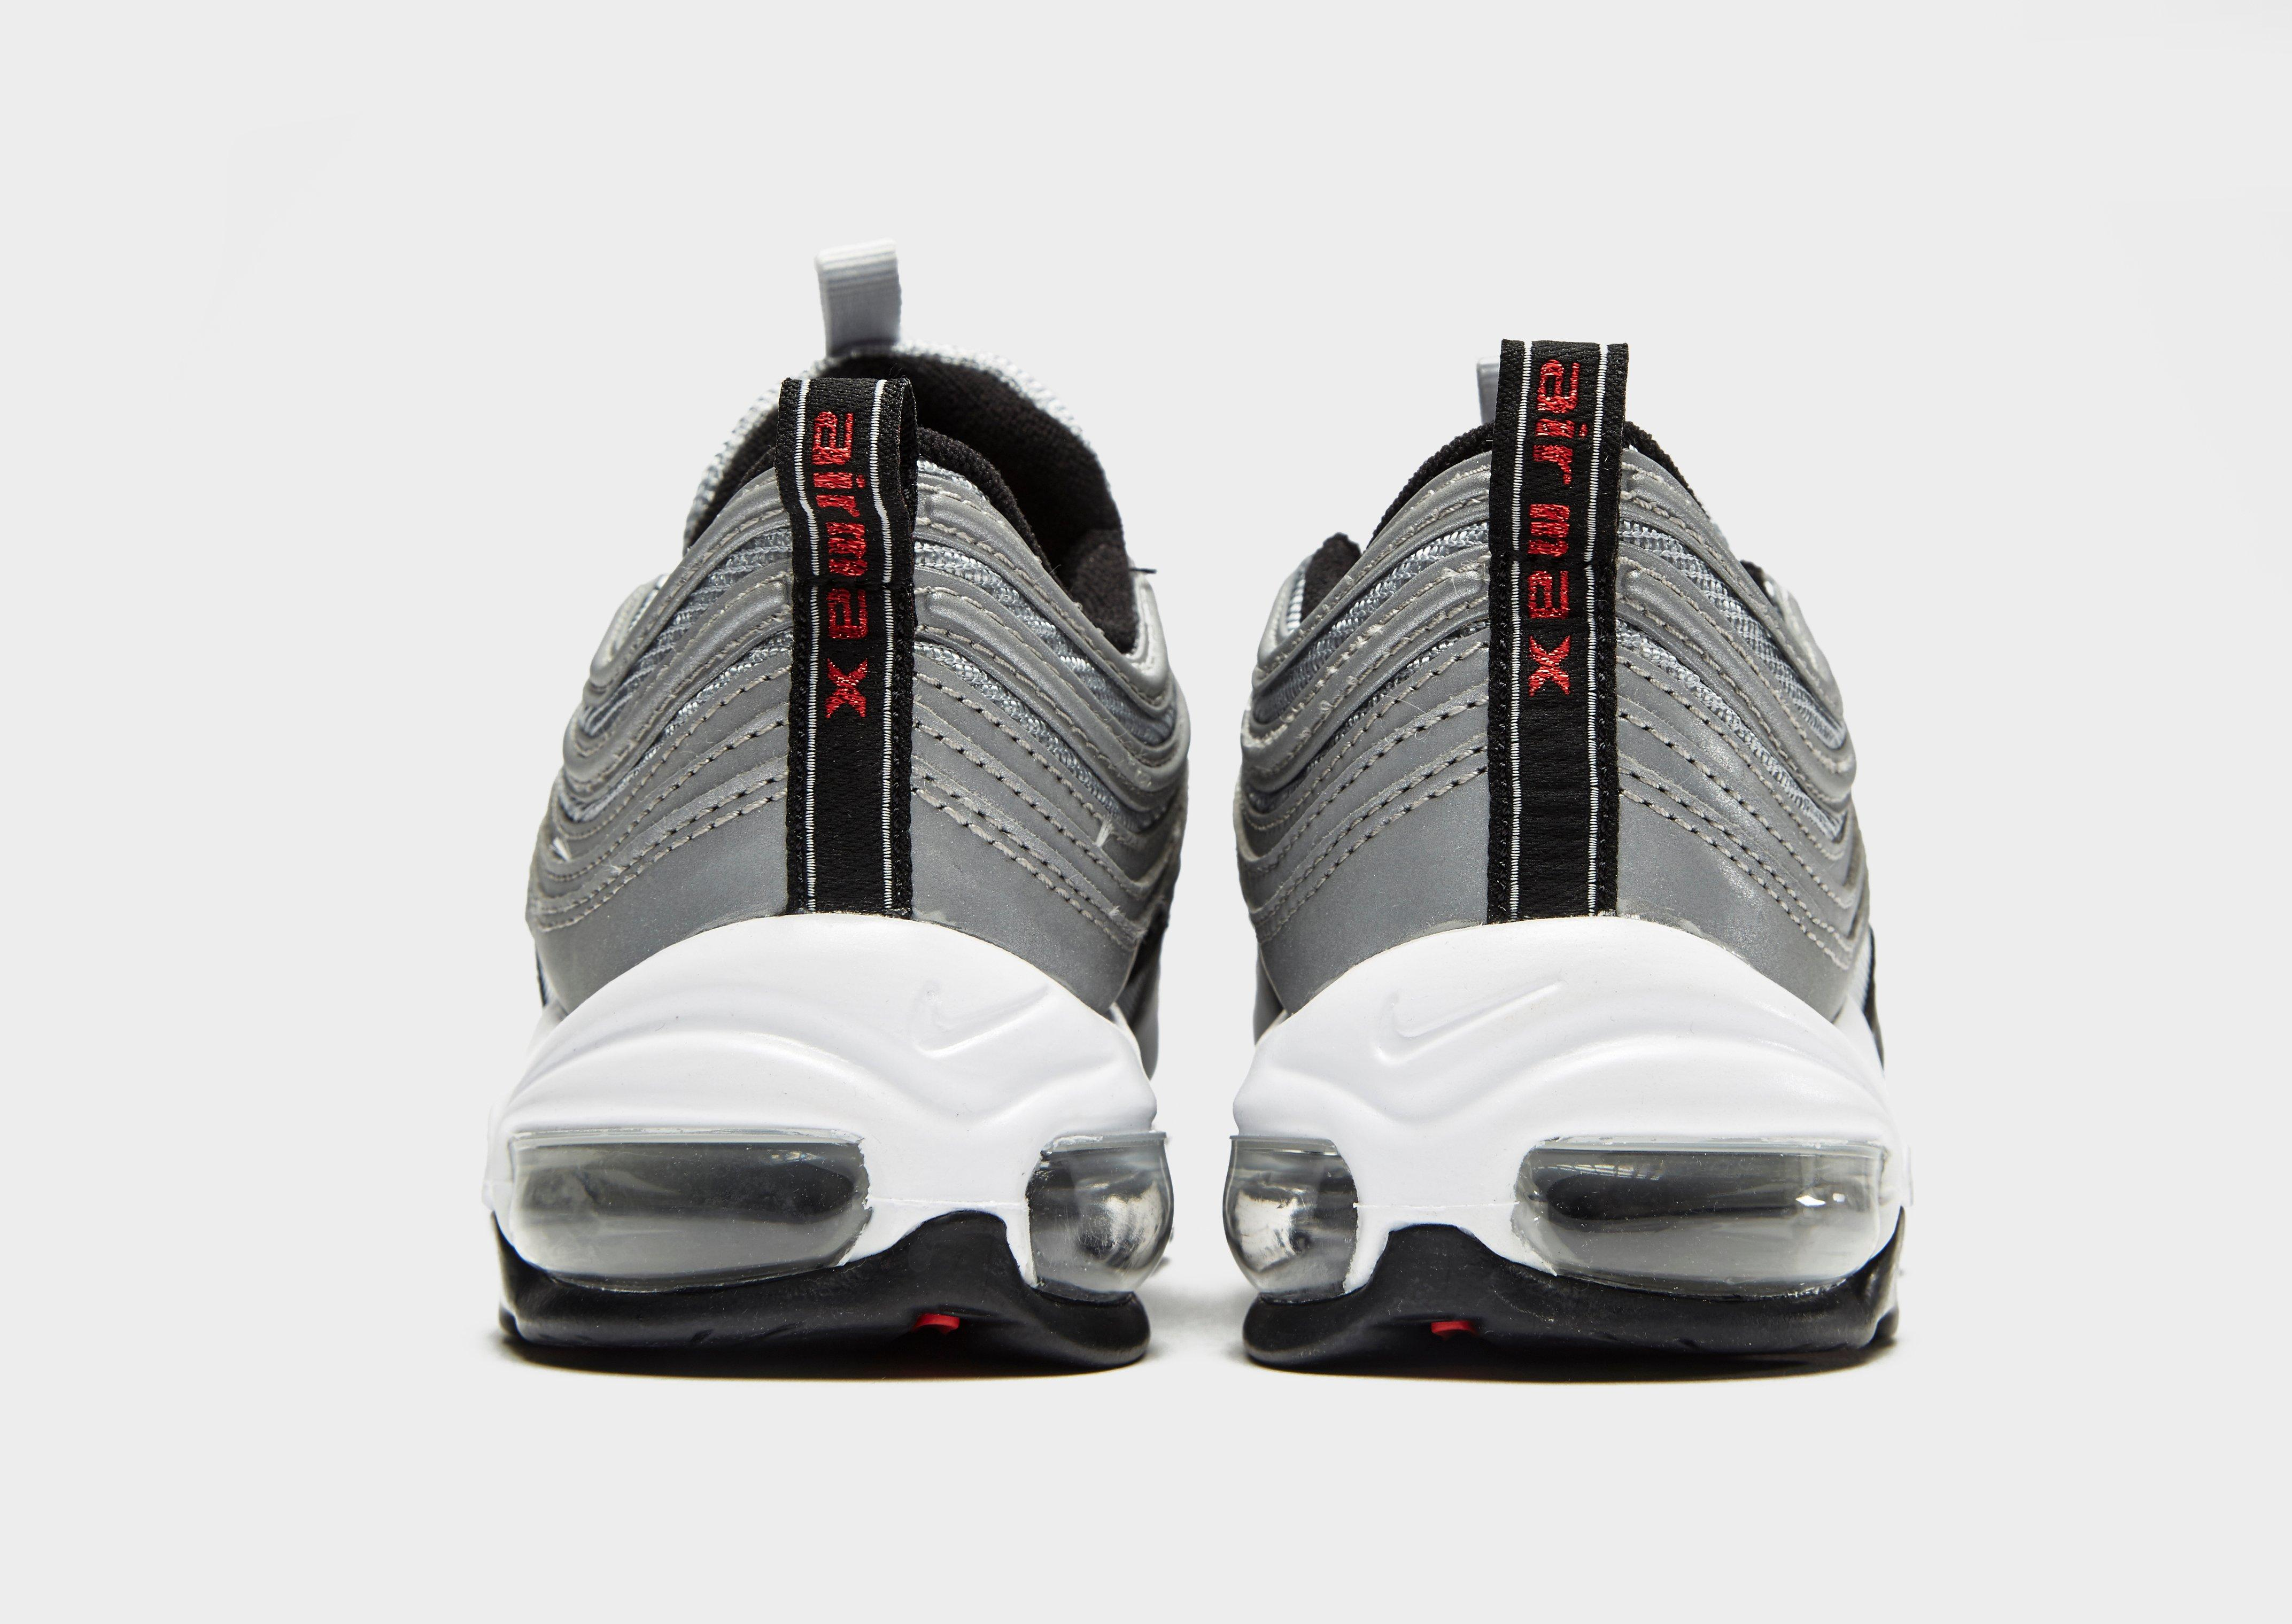 72f4d841bd5 The Keen Obsidian is essential for everyday qvc nike shoes comfort and  style. This will ensure the best deal is received. There are heels like  platform heel ...